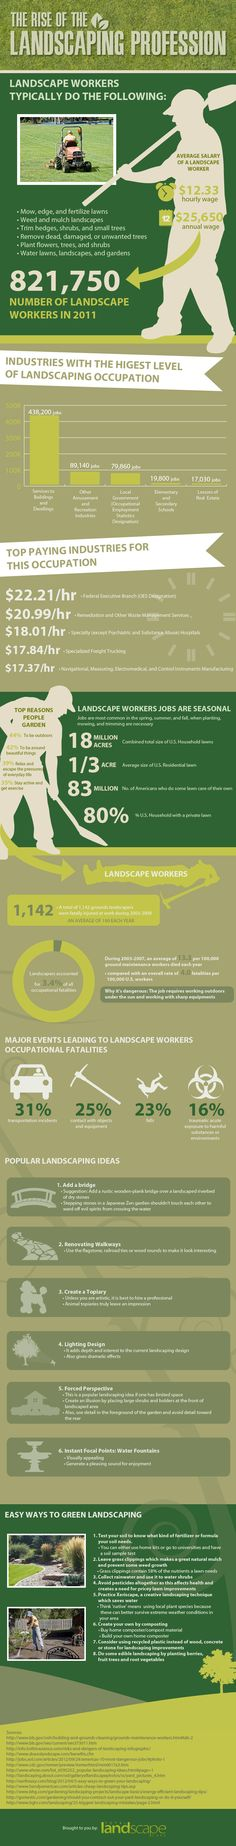 The Rise of Landscaping Infographic | Landscaping | Landscape Care & Ideas